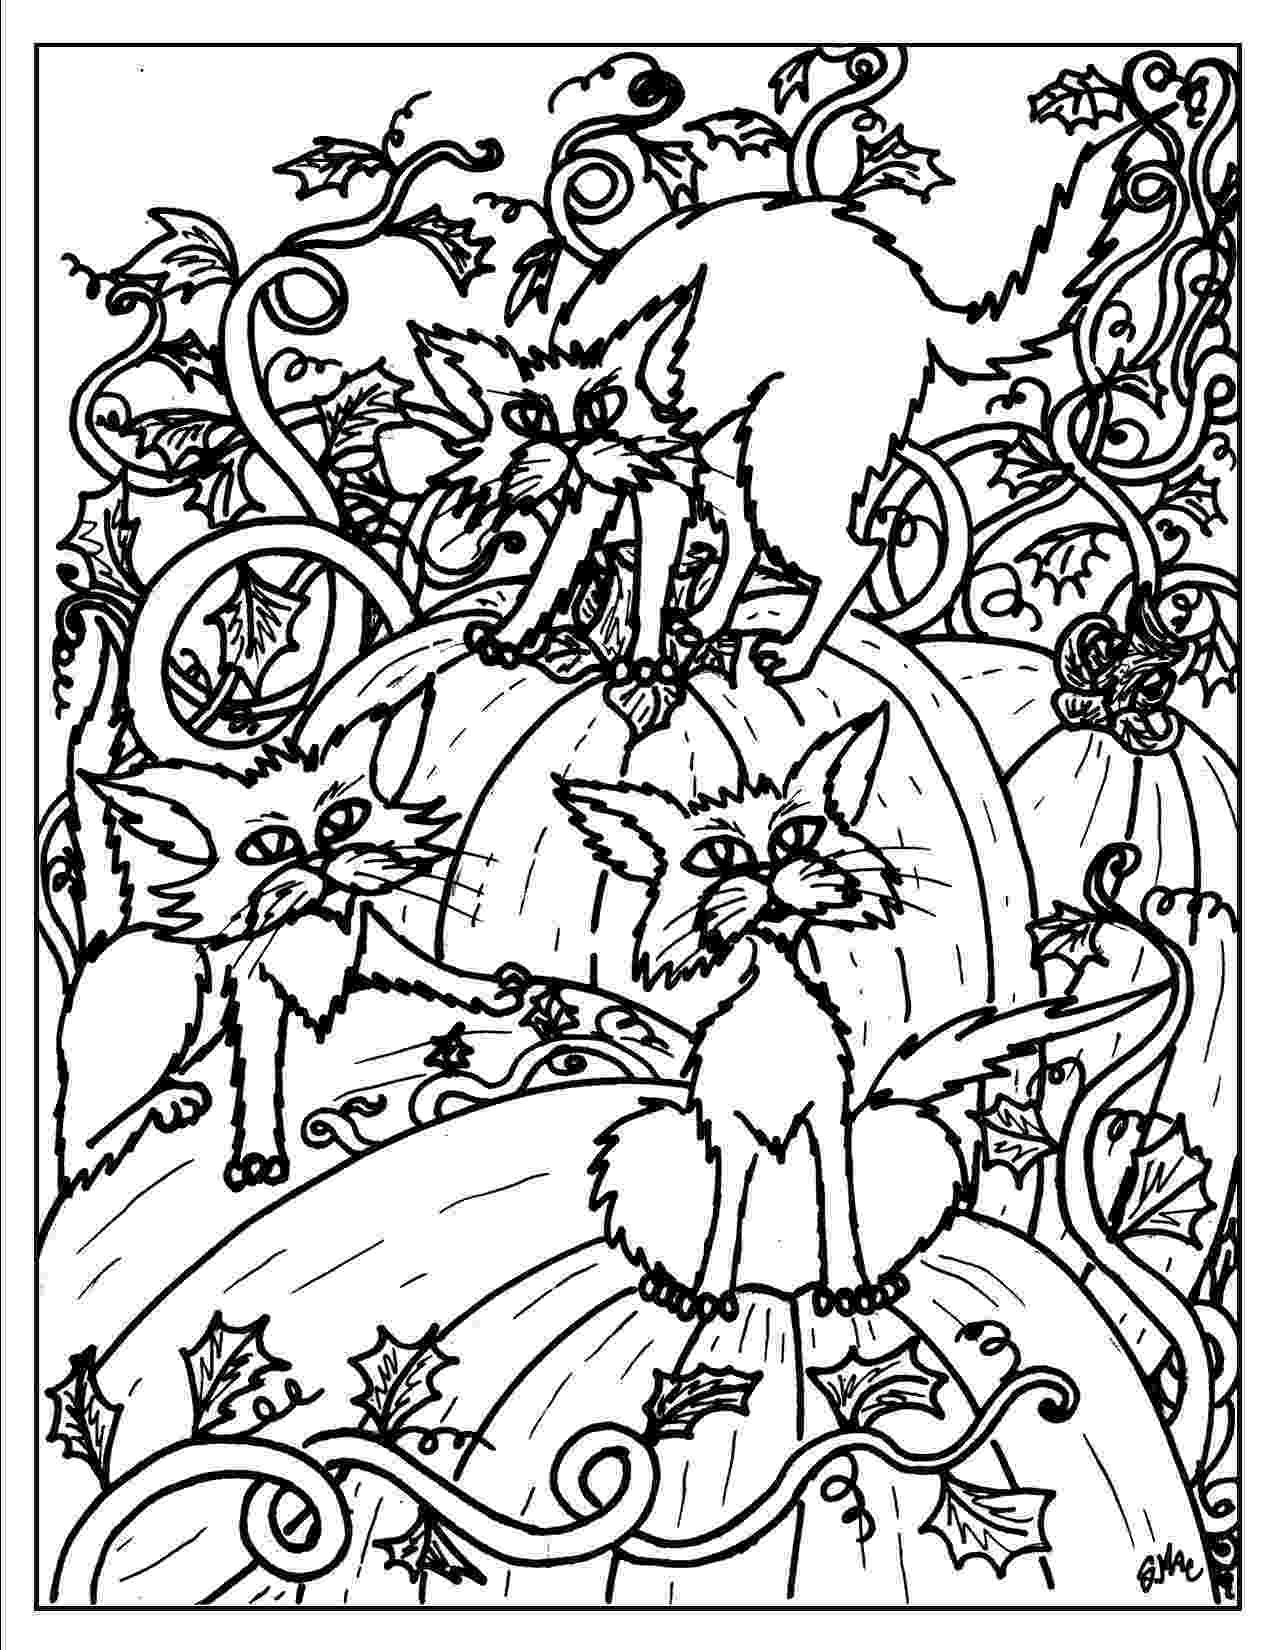 coloring pages for adults halloween halloween coloring page printables popsugar smart living adults halloween pages for coloring